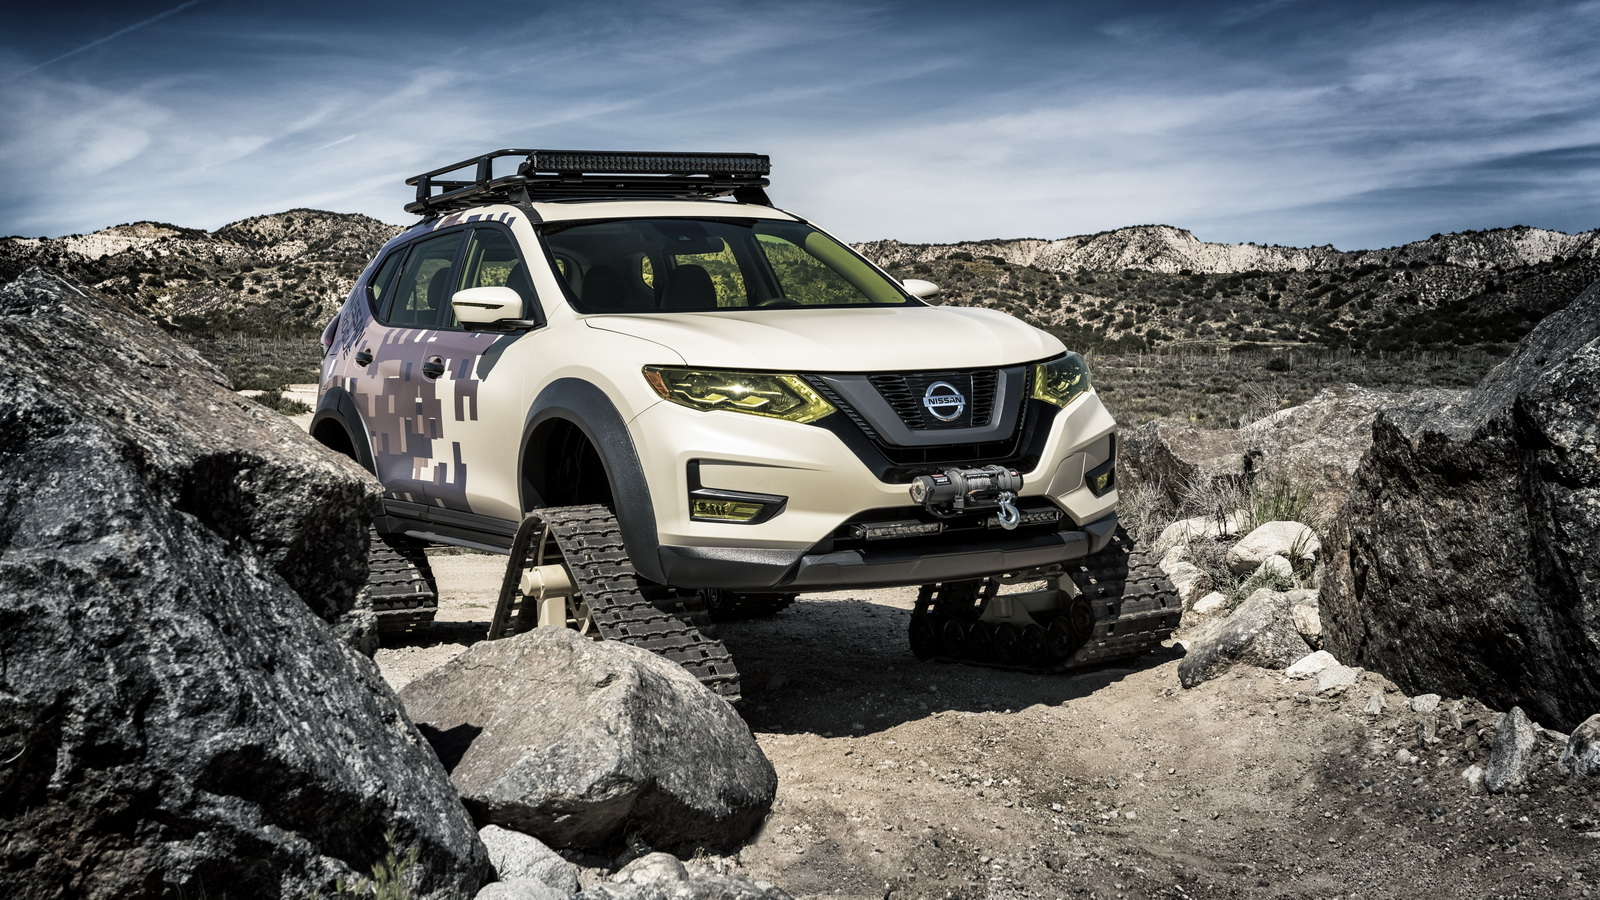 The Nissan Rogue Trail Warrior adds a new dimension to family adventures with its snow/sand tracks, gear basket, winch and camo paint. The special one-off project vehicle is one of several unique takes on Nissan's best-selling Rogue crossover created exclusively for the 2017 New York auto show.